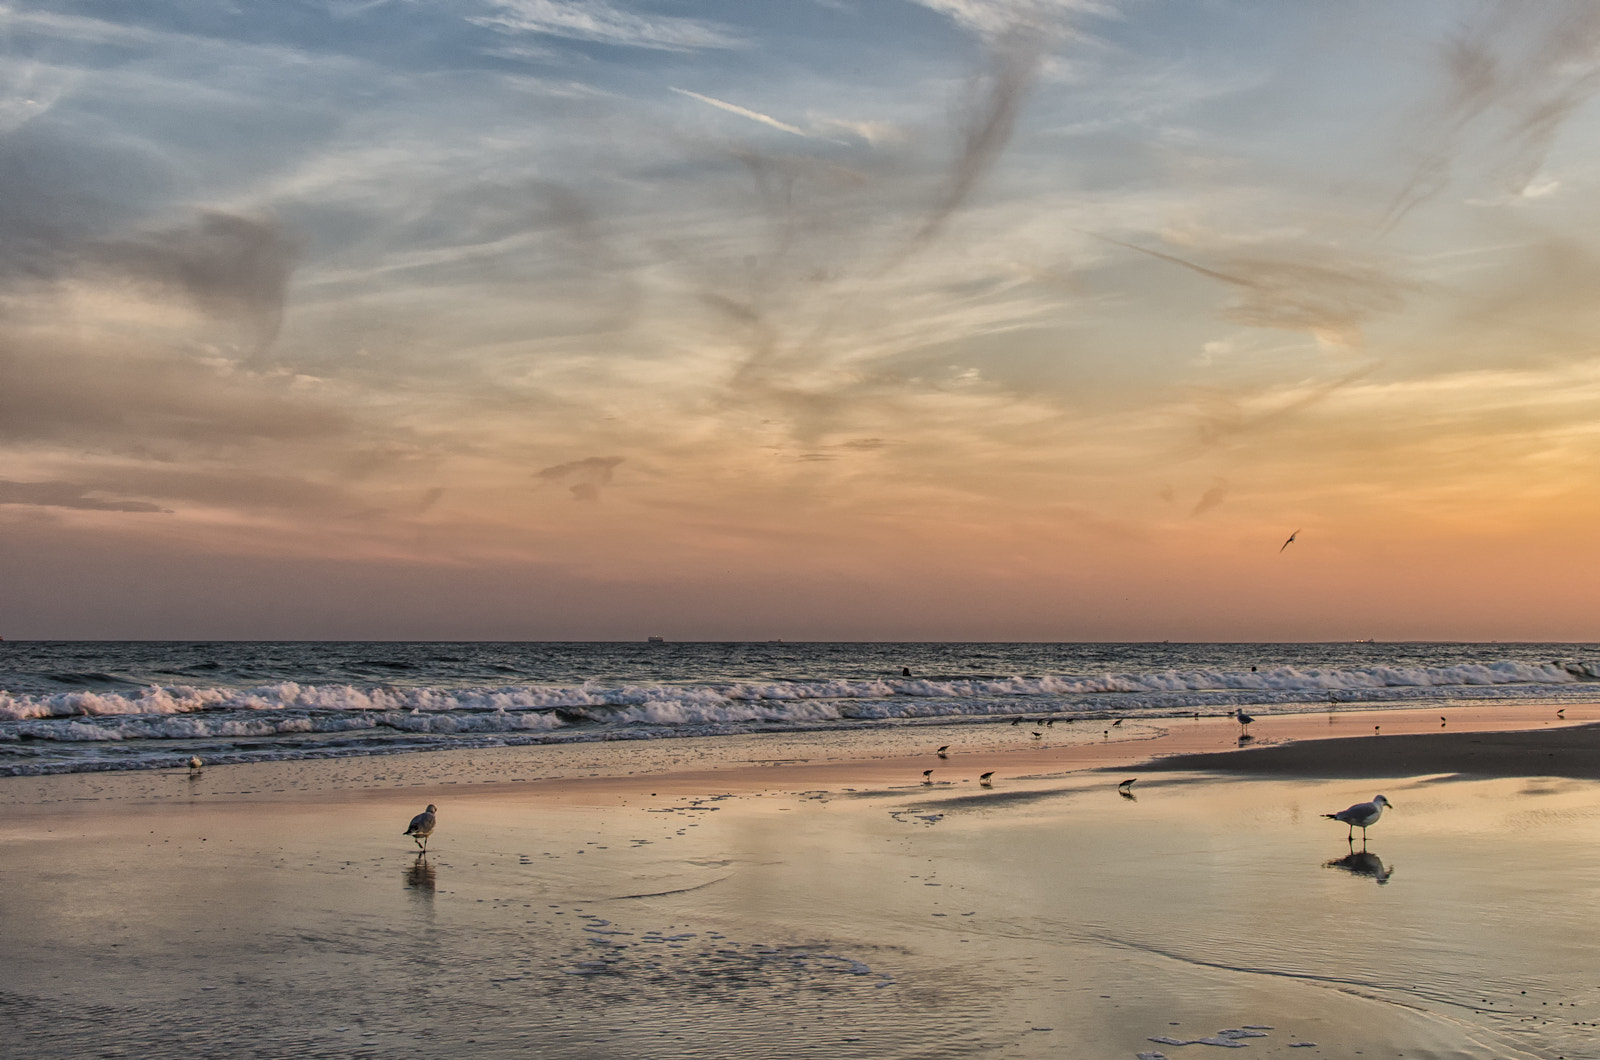 Photograph Sunset at the Beach by Alex Broytman on 500px